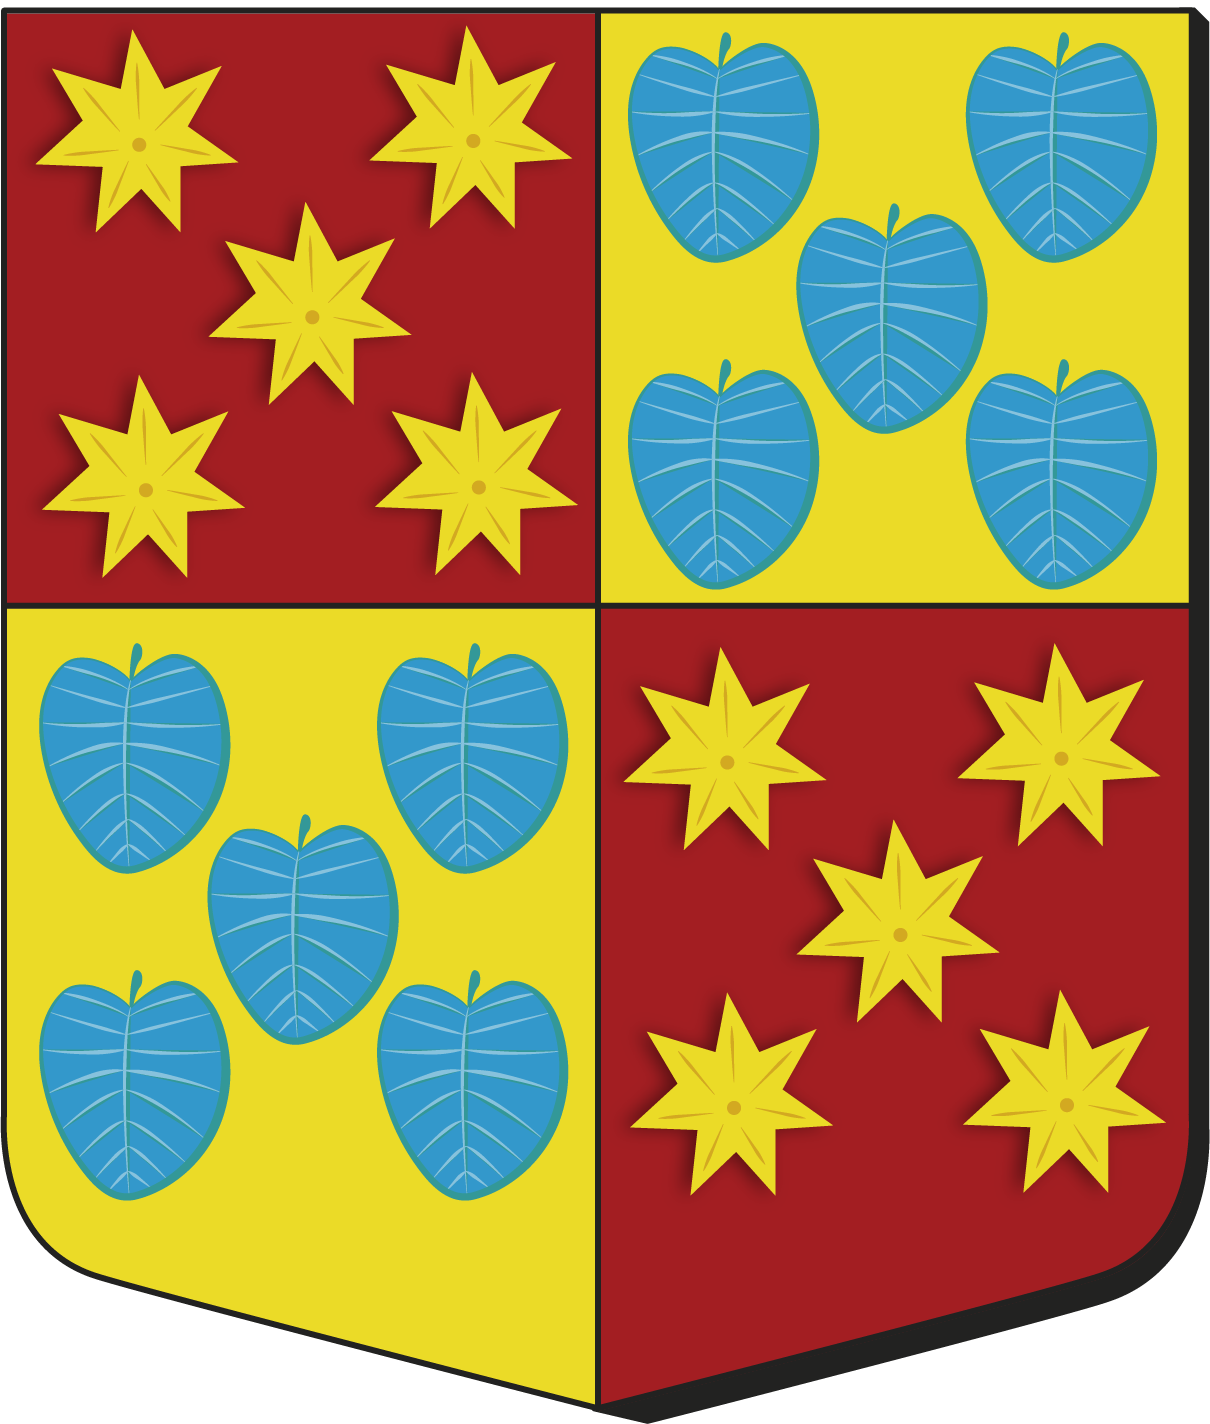 Blason-St-Just-Sauvage